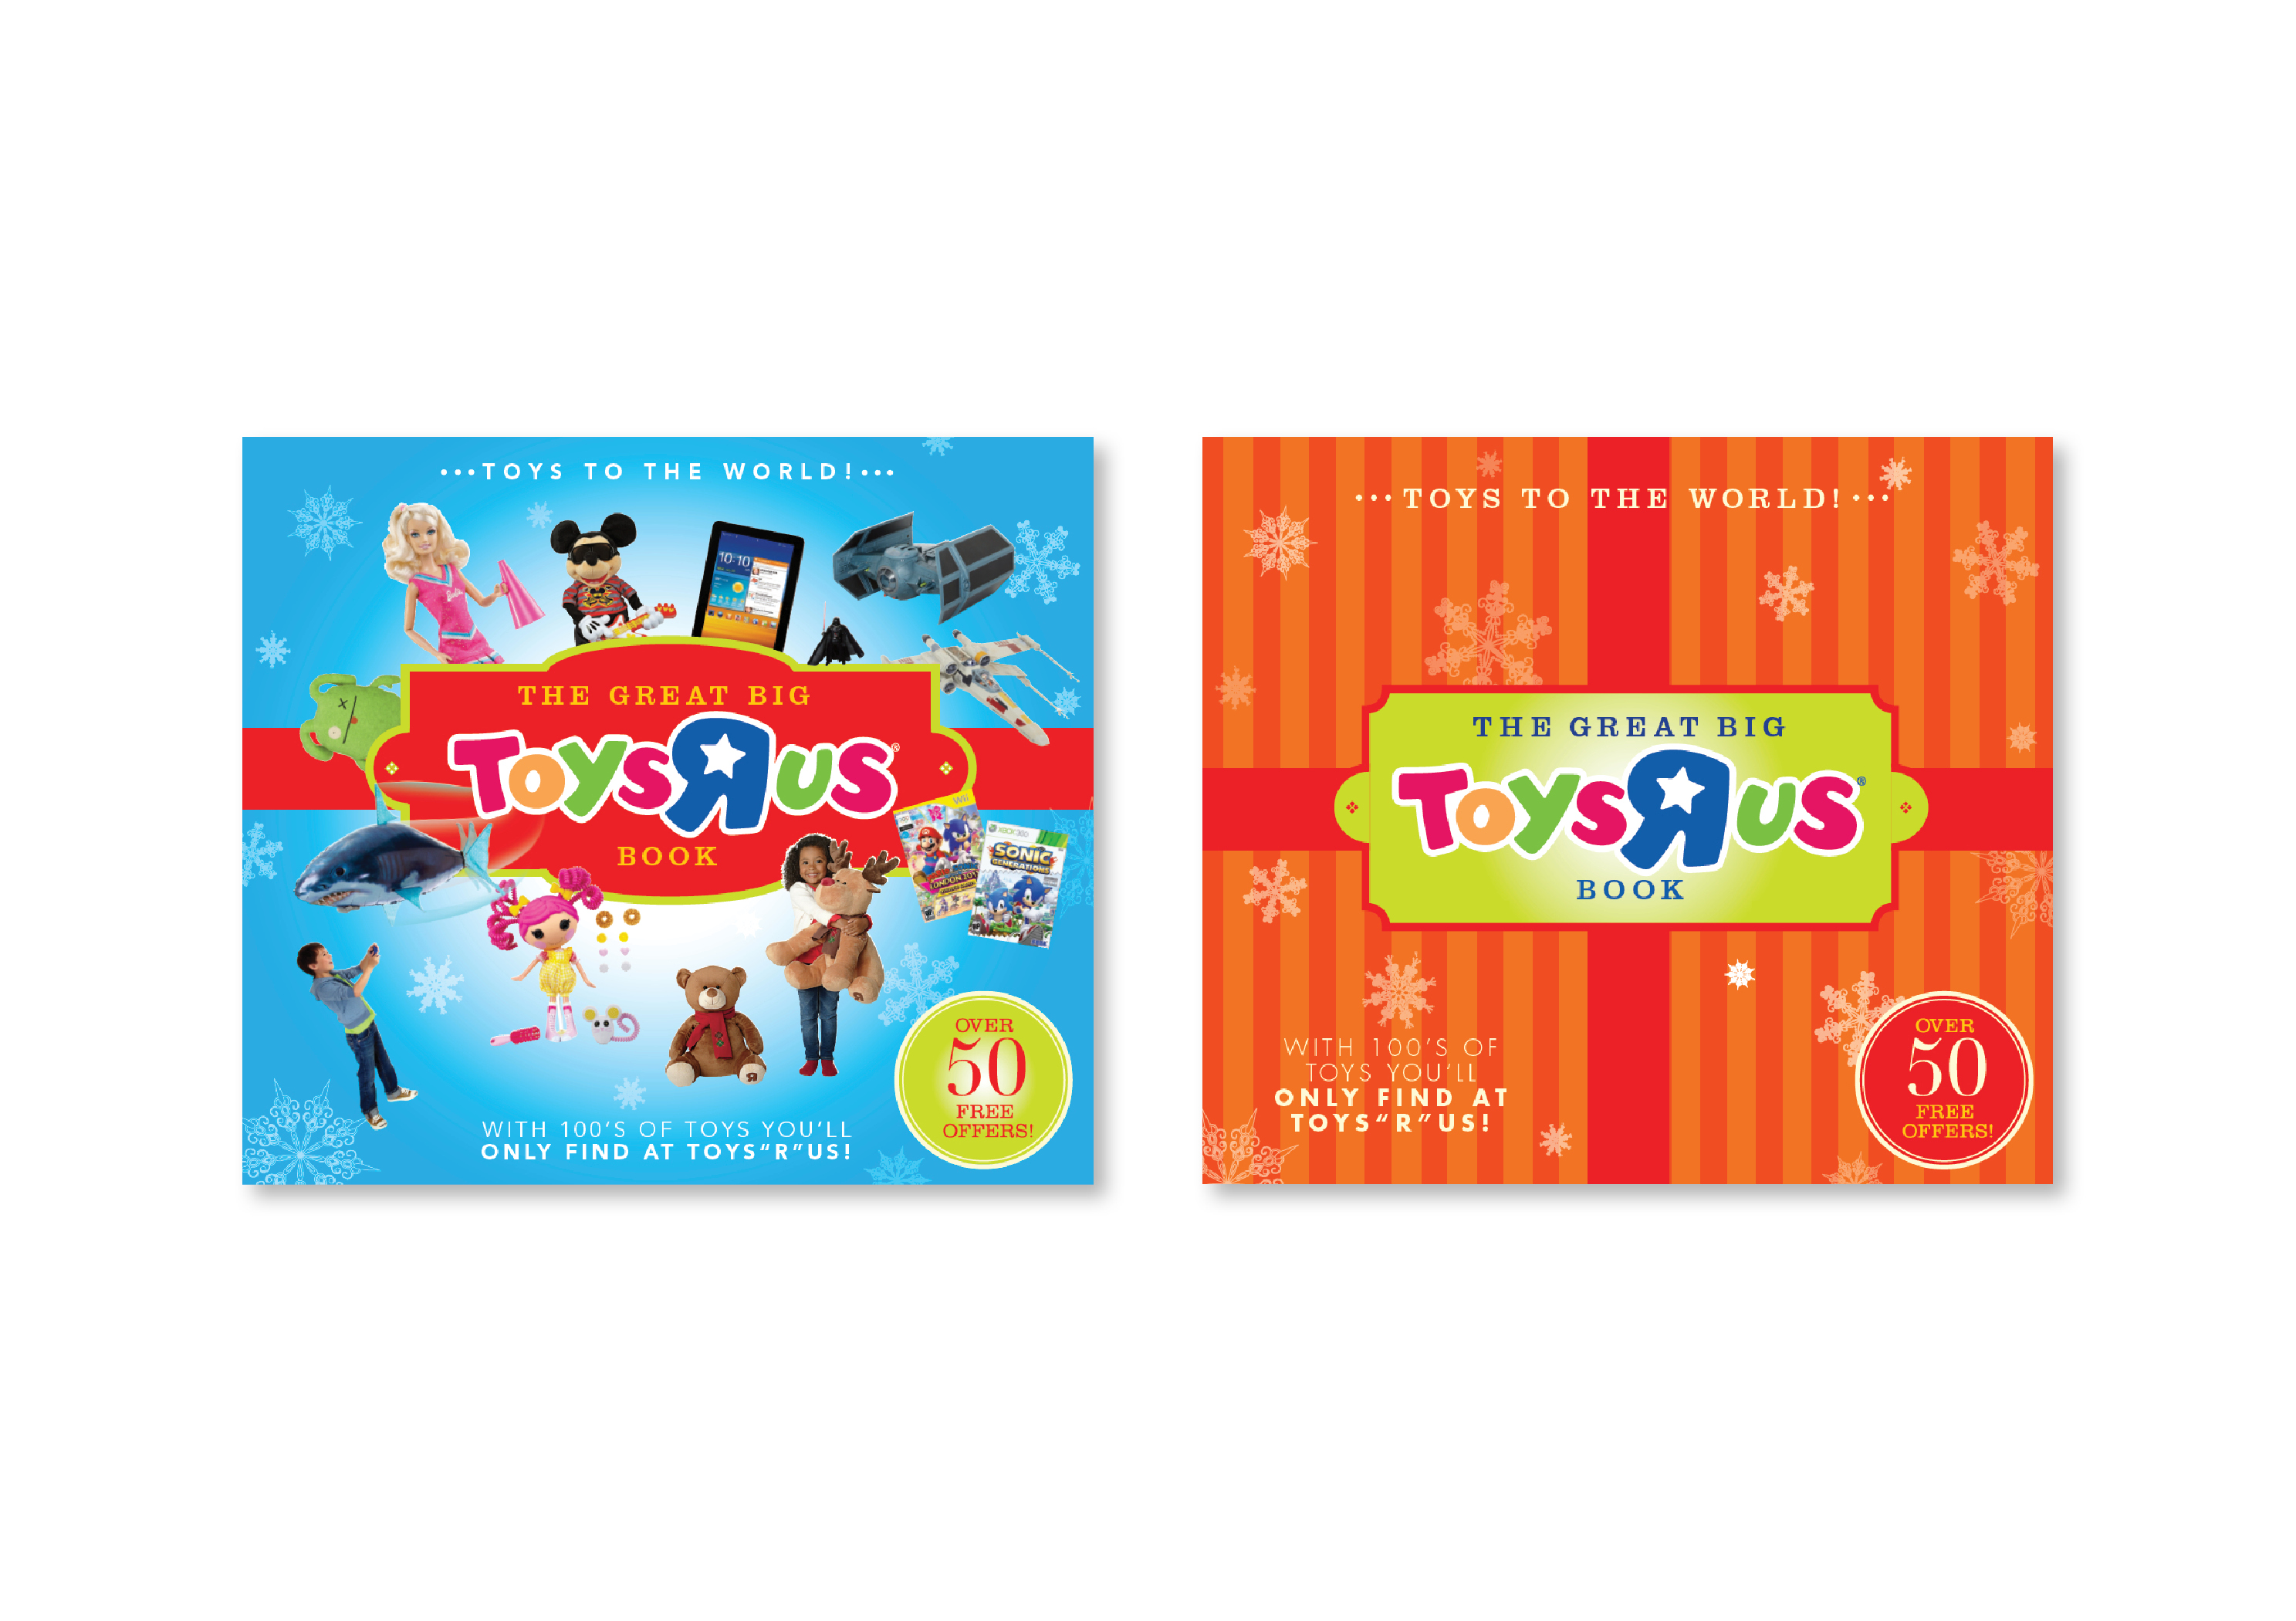 Toys'R'Us Product Catalogue